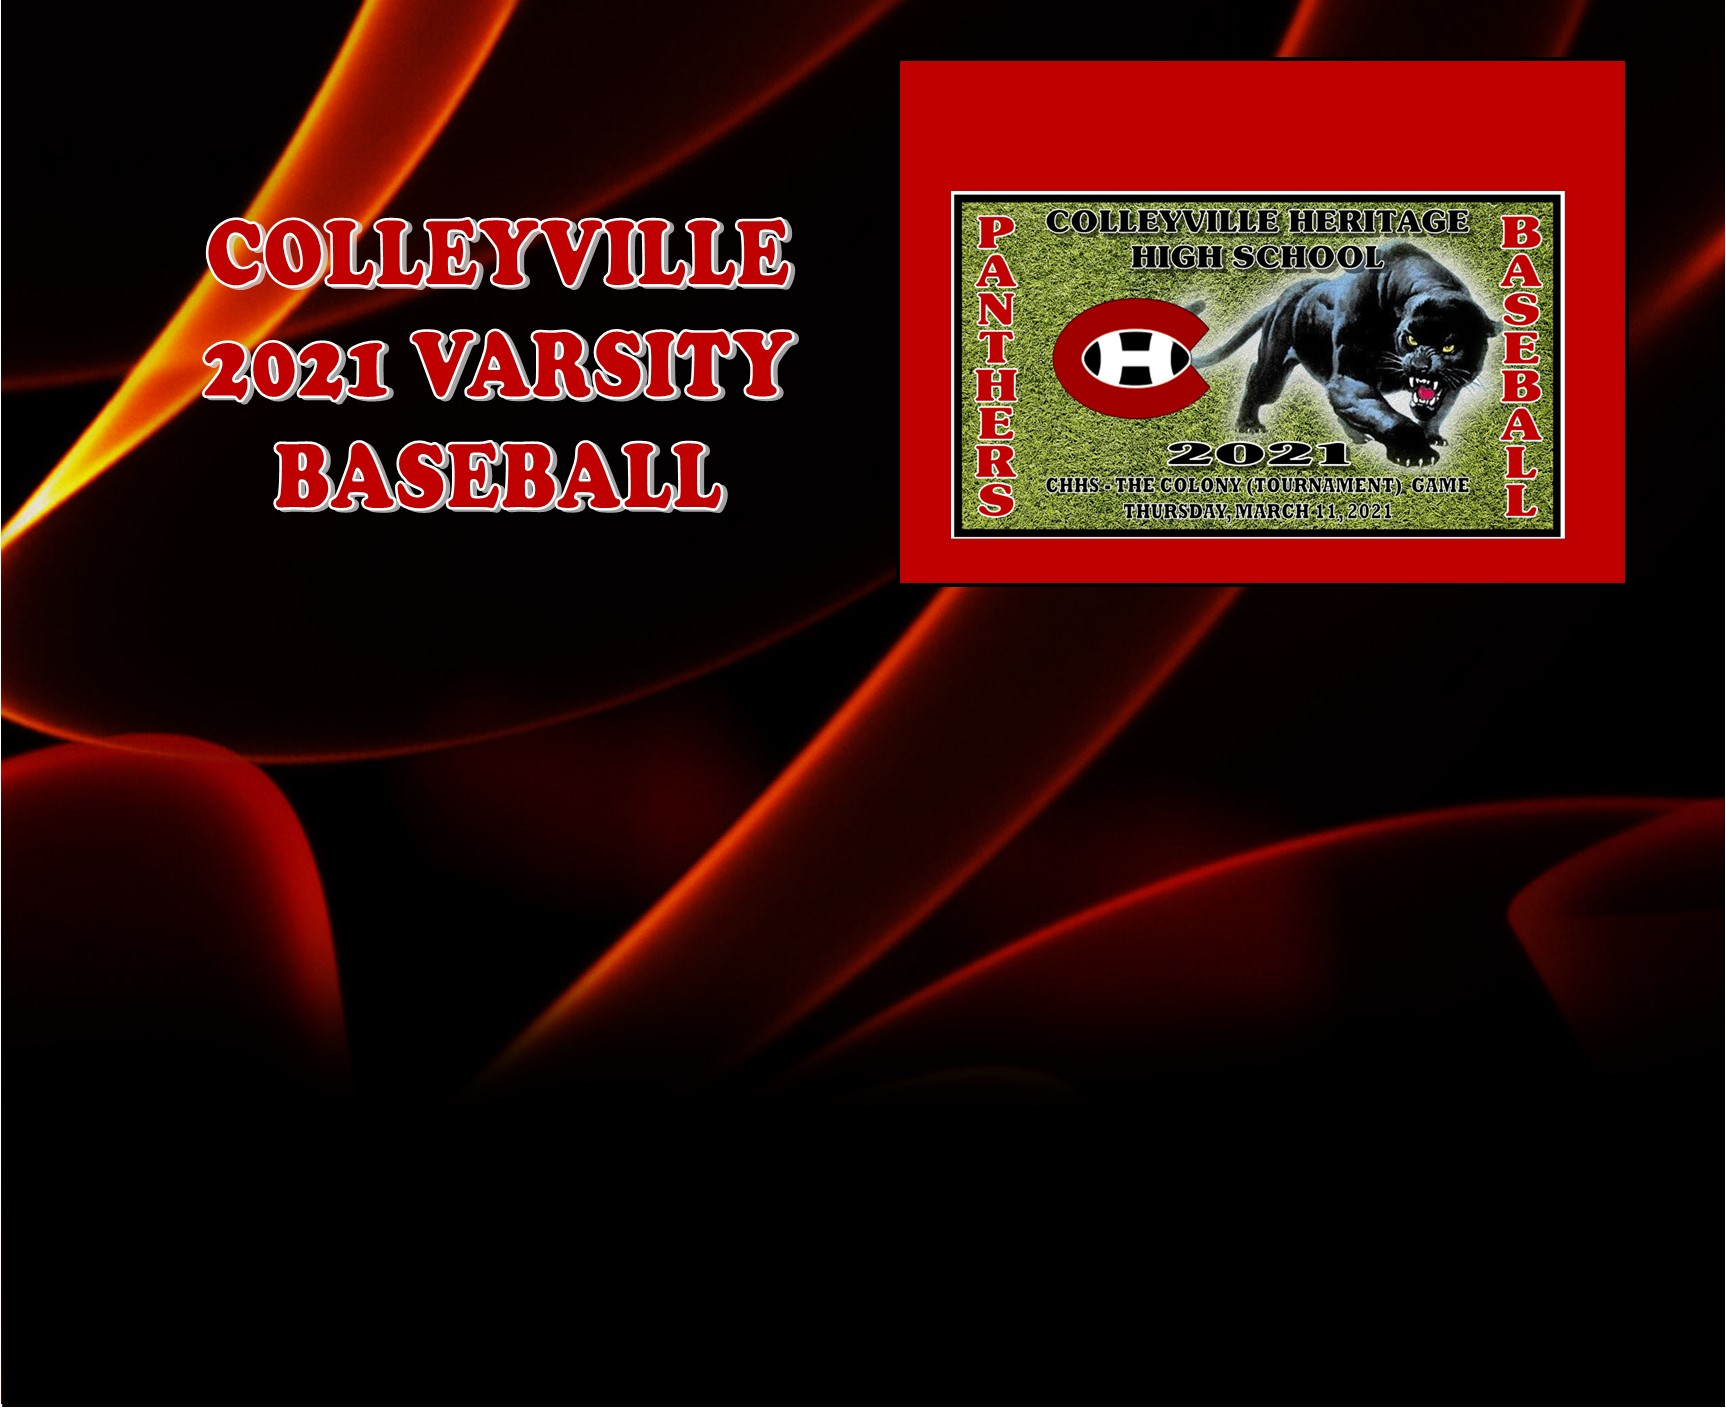 GCISD Baseball: Colleyville Panthers Overpower The Colony Cougars 15-6